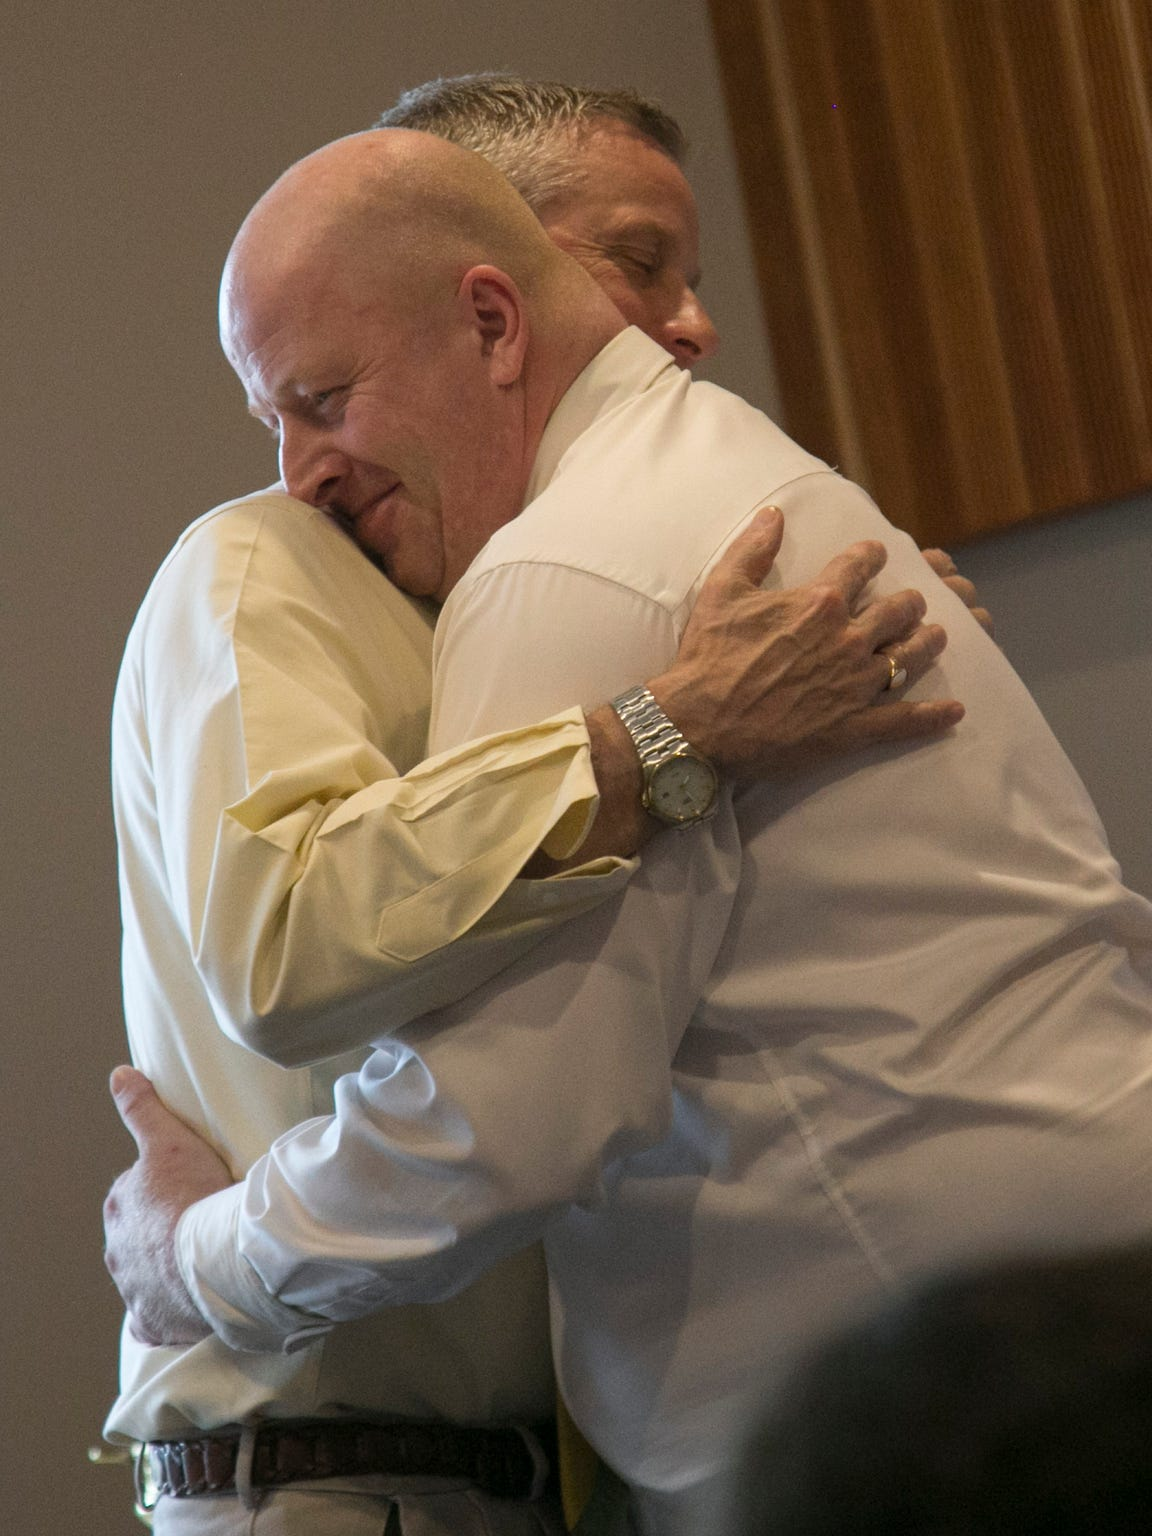 Jerome Kurtz hugs Dan Gates after giving testimonial